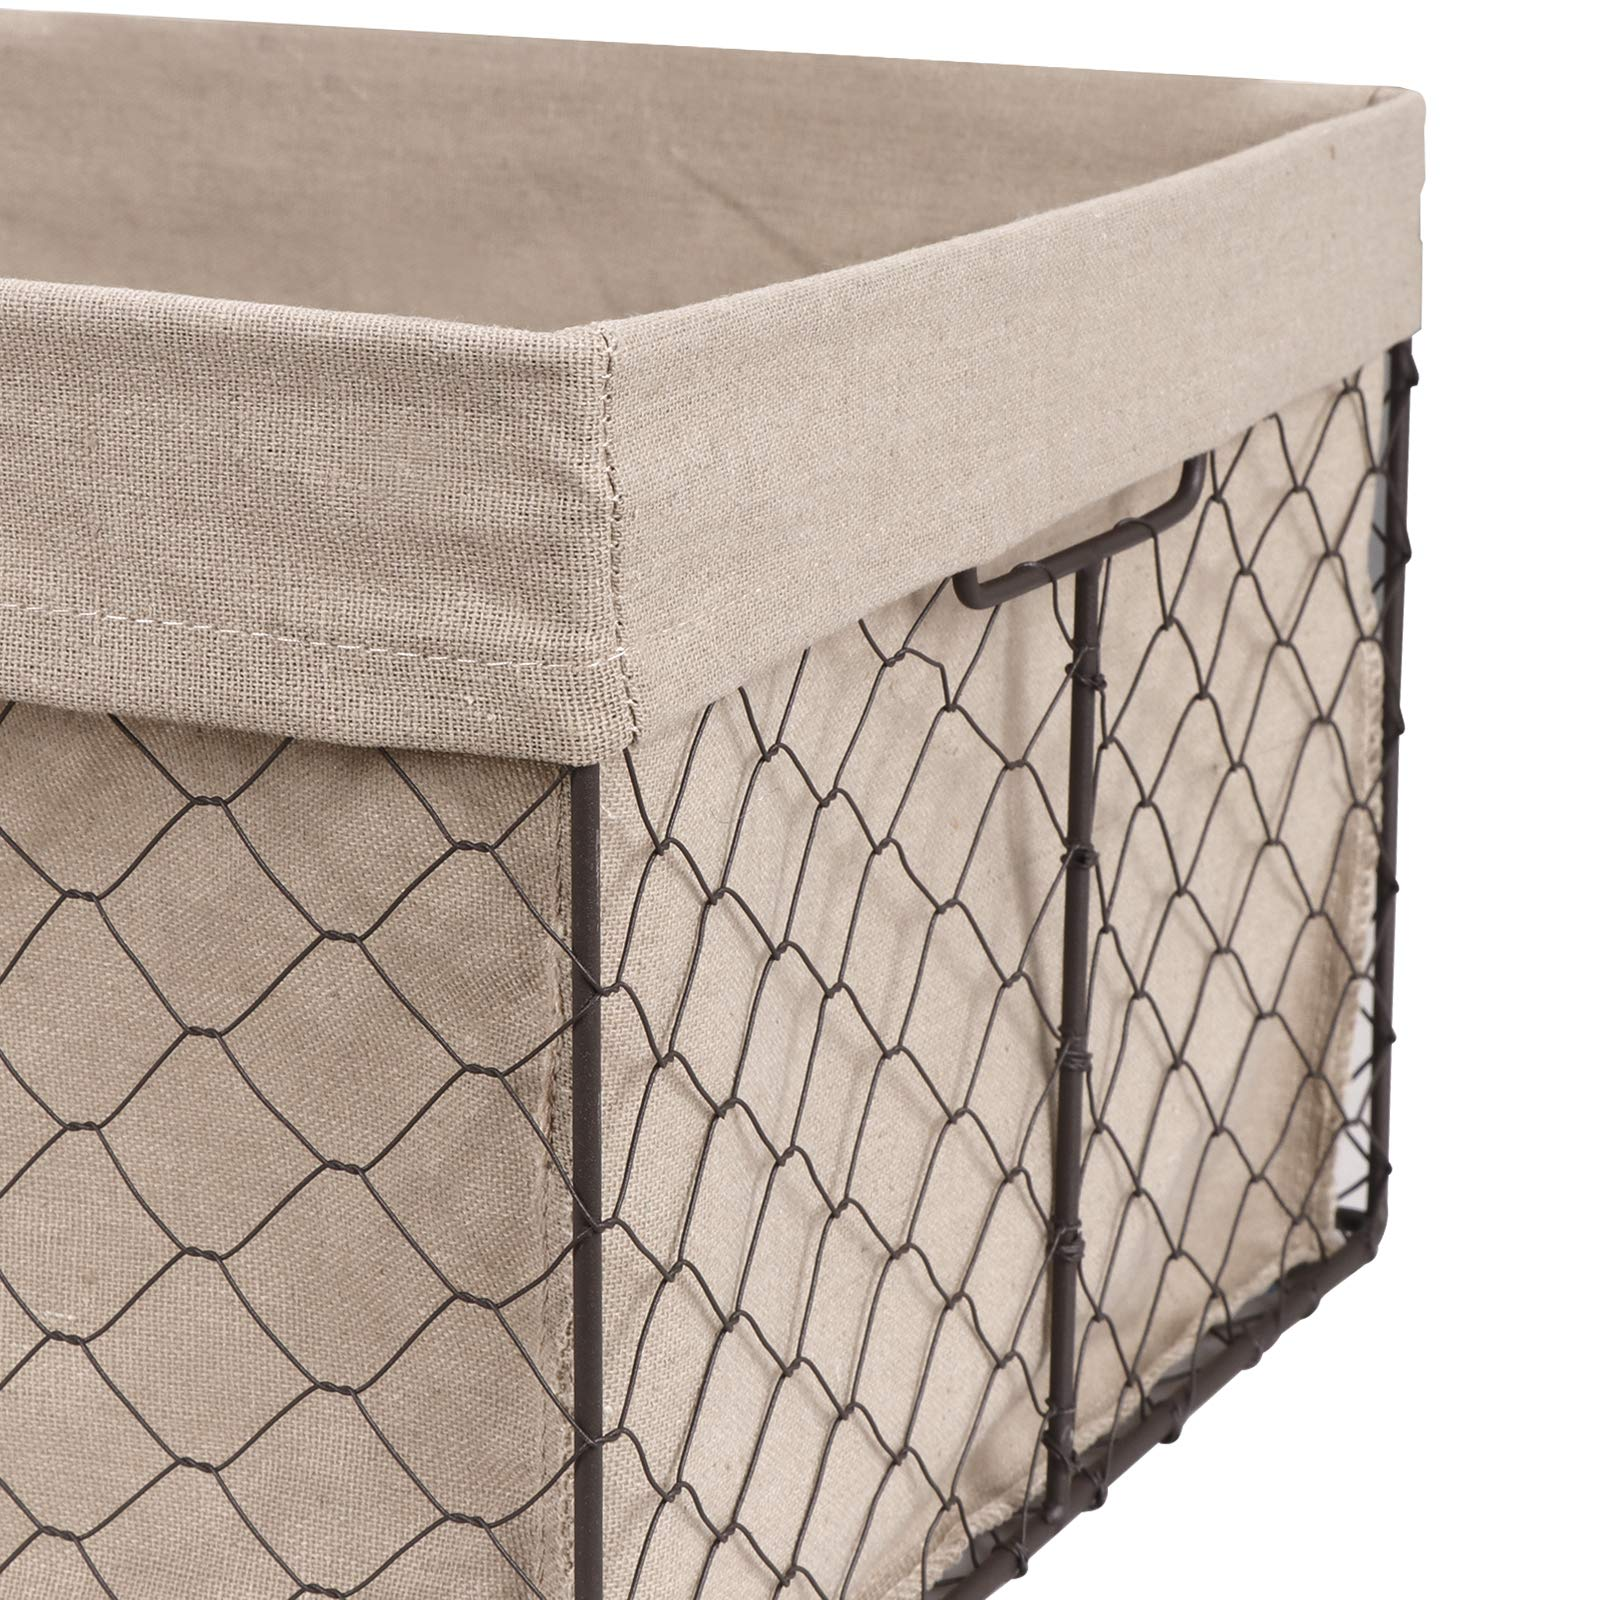 F2C Home Decor Set of 5 Vintage Toy Fruit Clothes Metal Chicken Wire Storage Basket Organizer W/Removable Fabric Liner for Bathroom Kitchen Office Nursery Laundry Bedroom Shelf by F2C (Image #6)